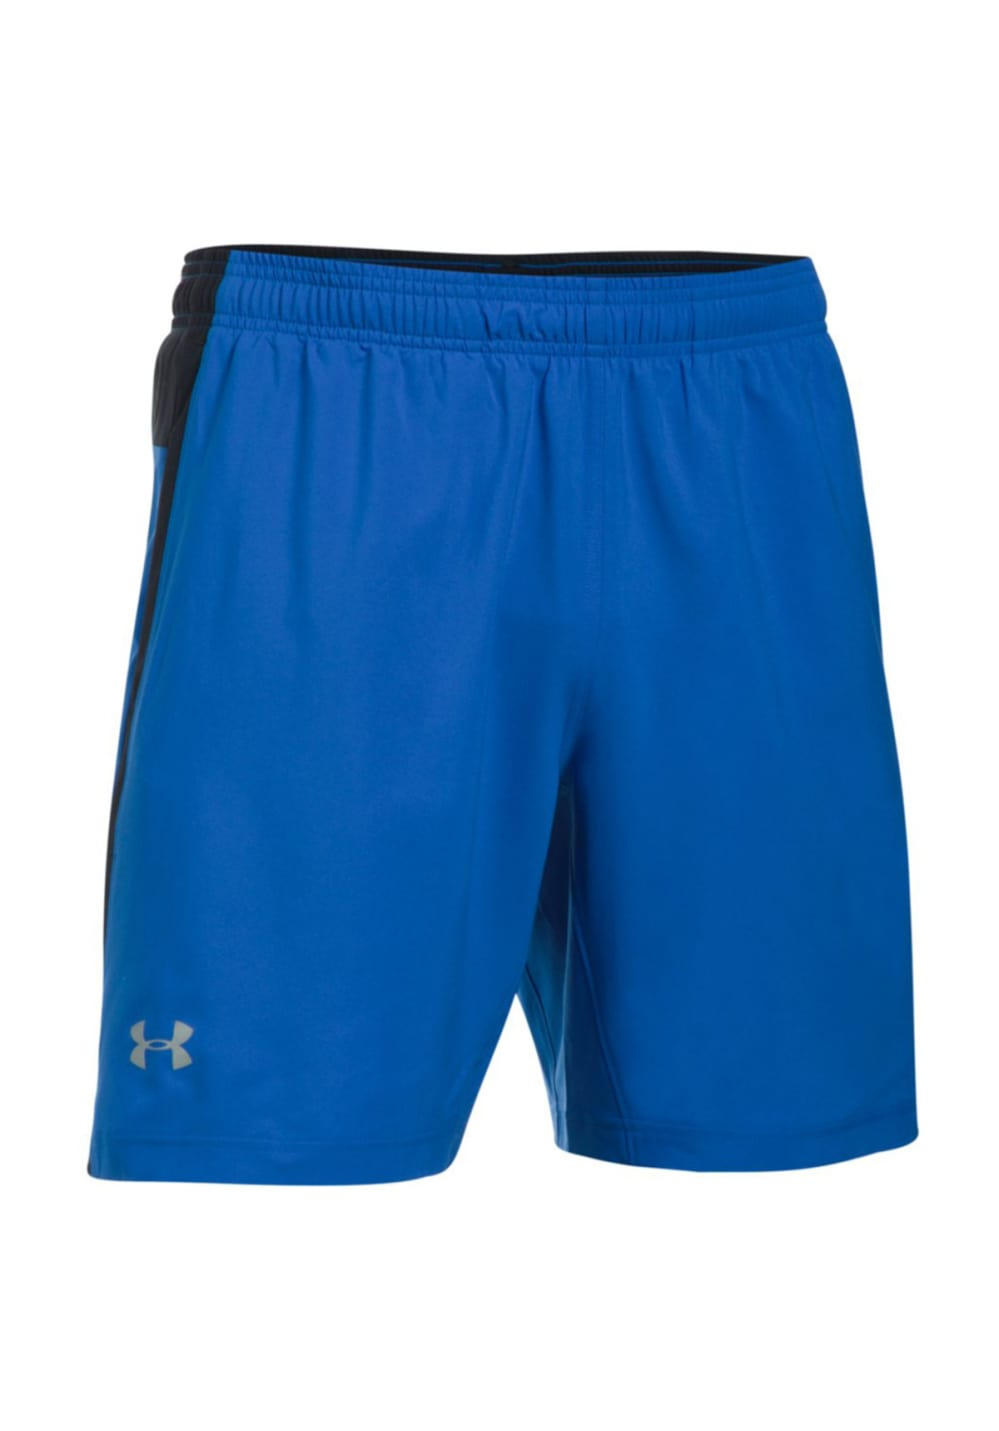 under armour launch sw 2 in 1 short laufhosen f r herren blau 21run. Black Bedroom Furniture Sets. Home Design Ideas